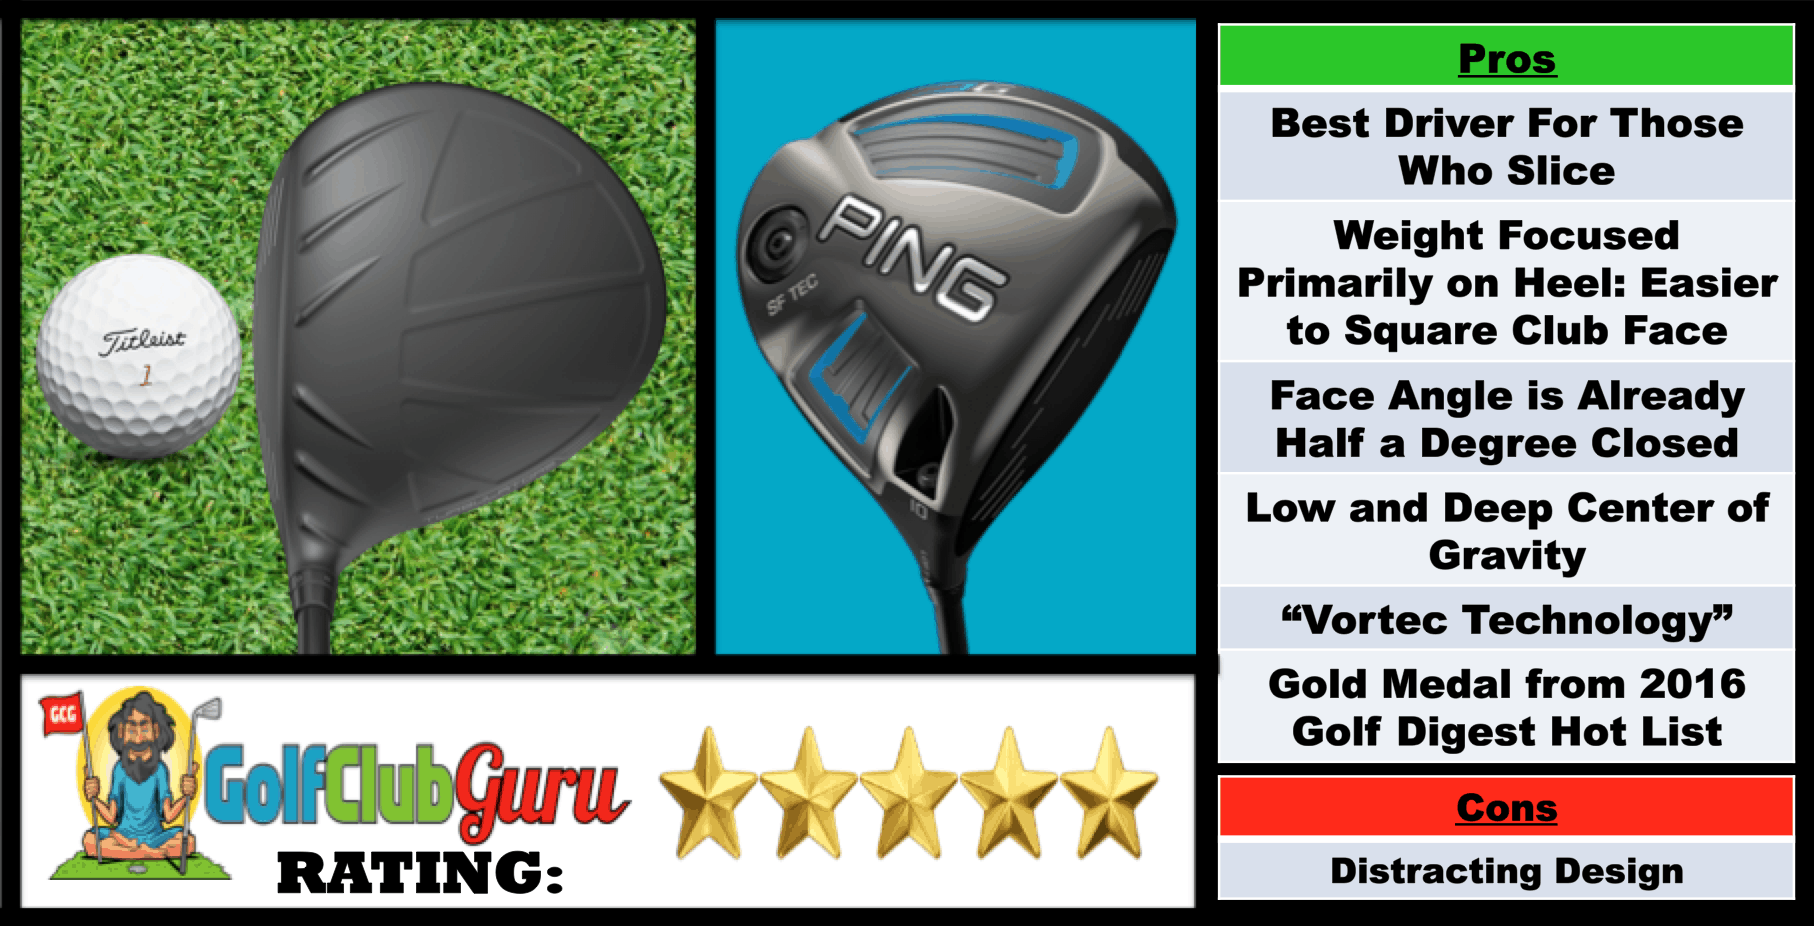 #1 Best Golf Driver for Beginners: Photos, Pros, and Cons of the Ping G SF Tec